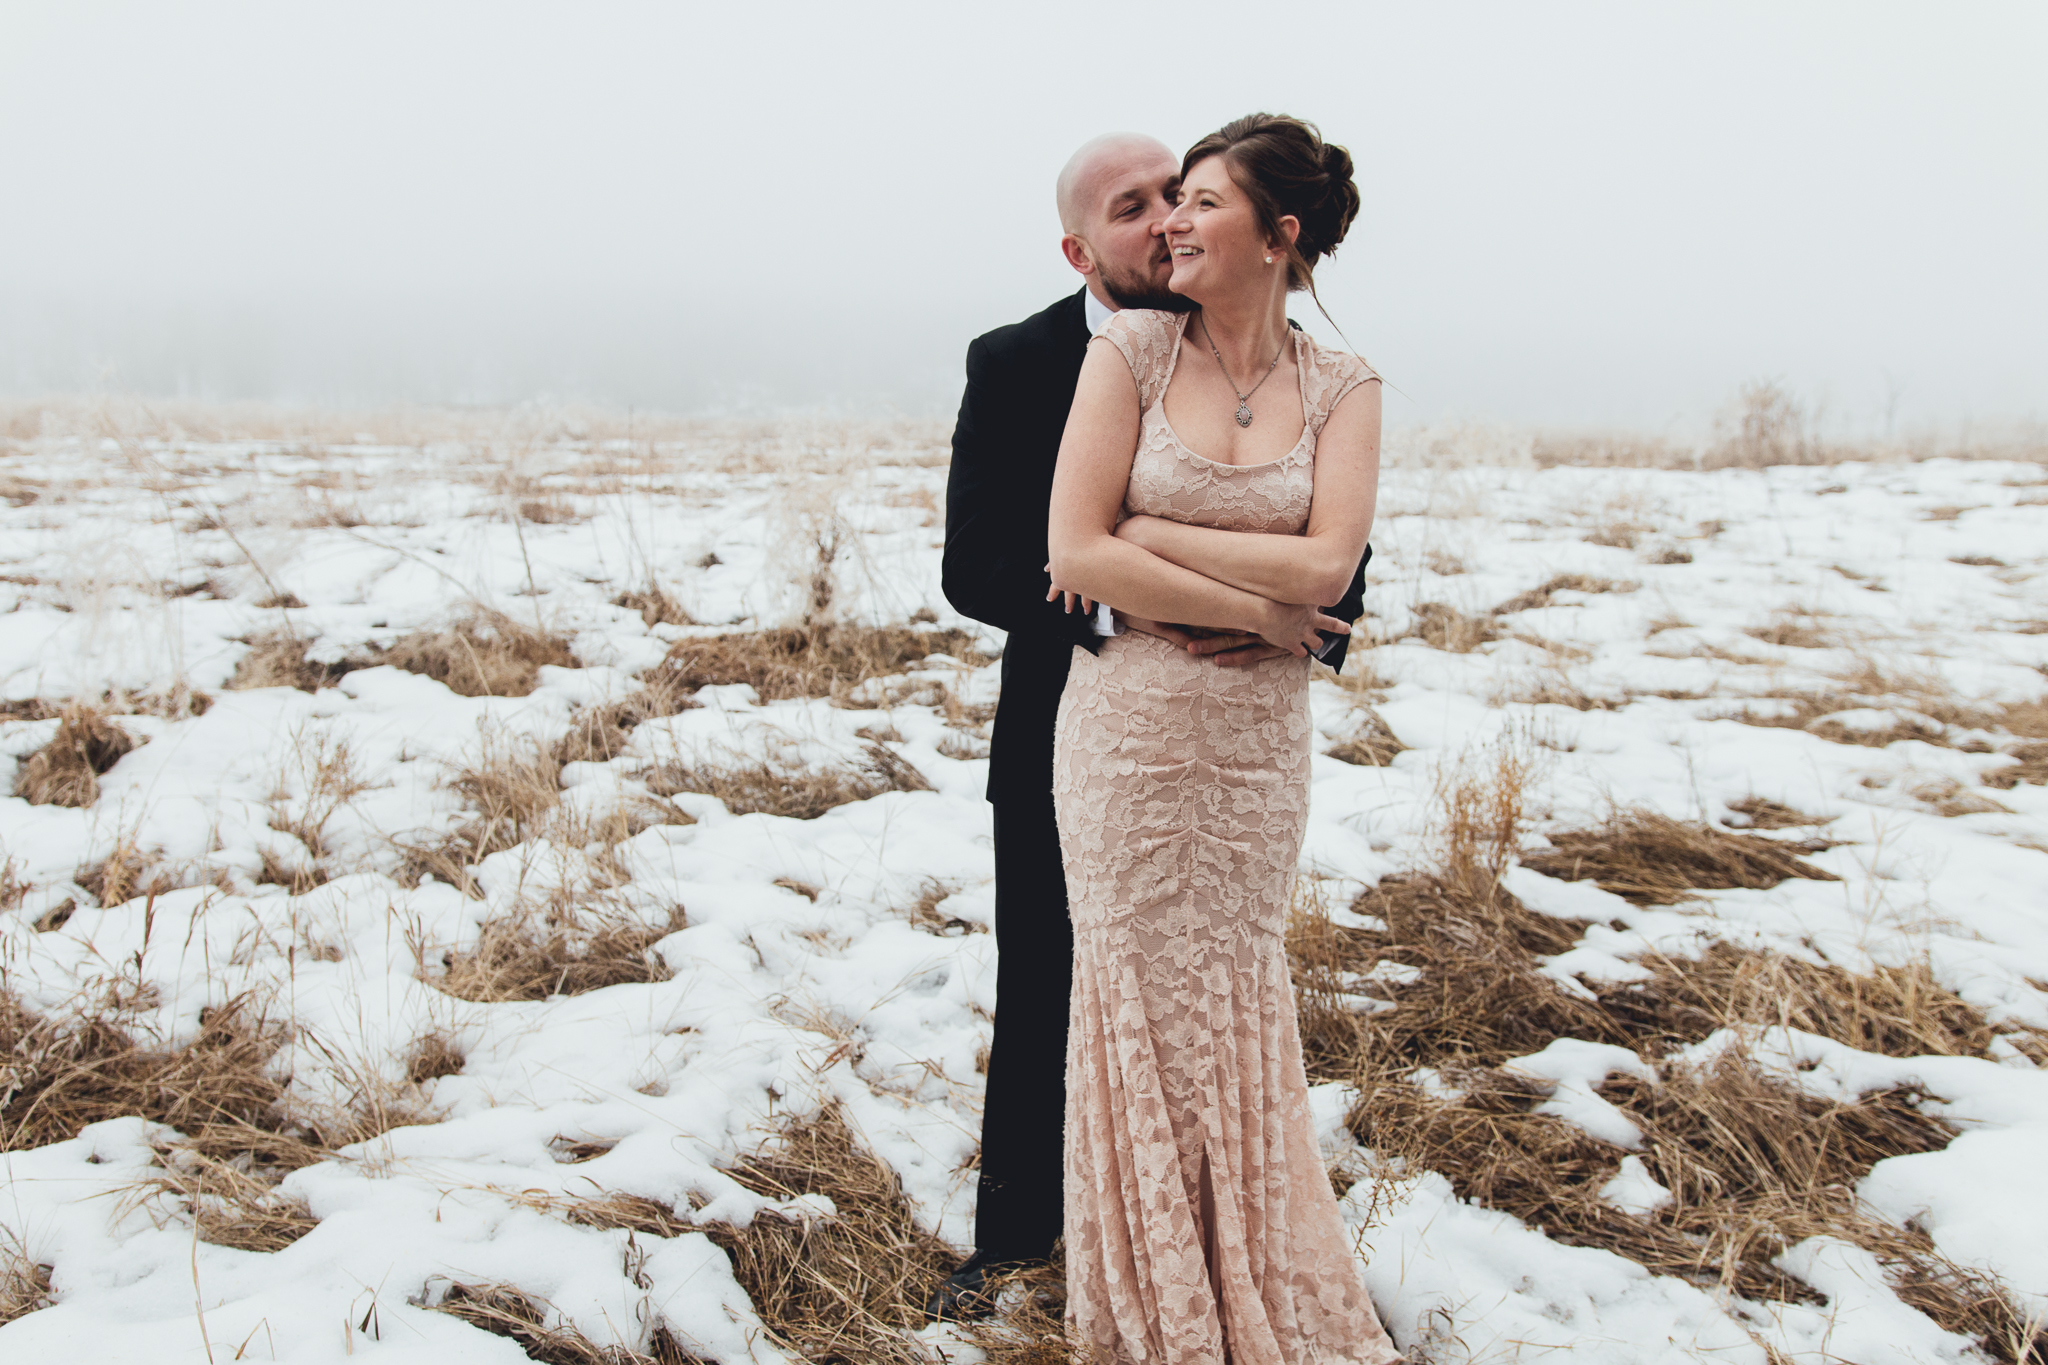 Bride and groom cuddling in snowy field in Fish Creek Park before intimate winter wedding